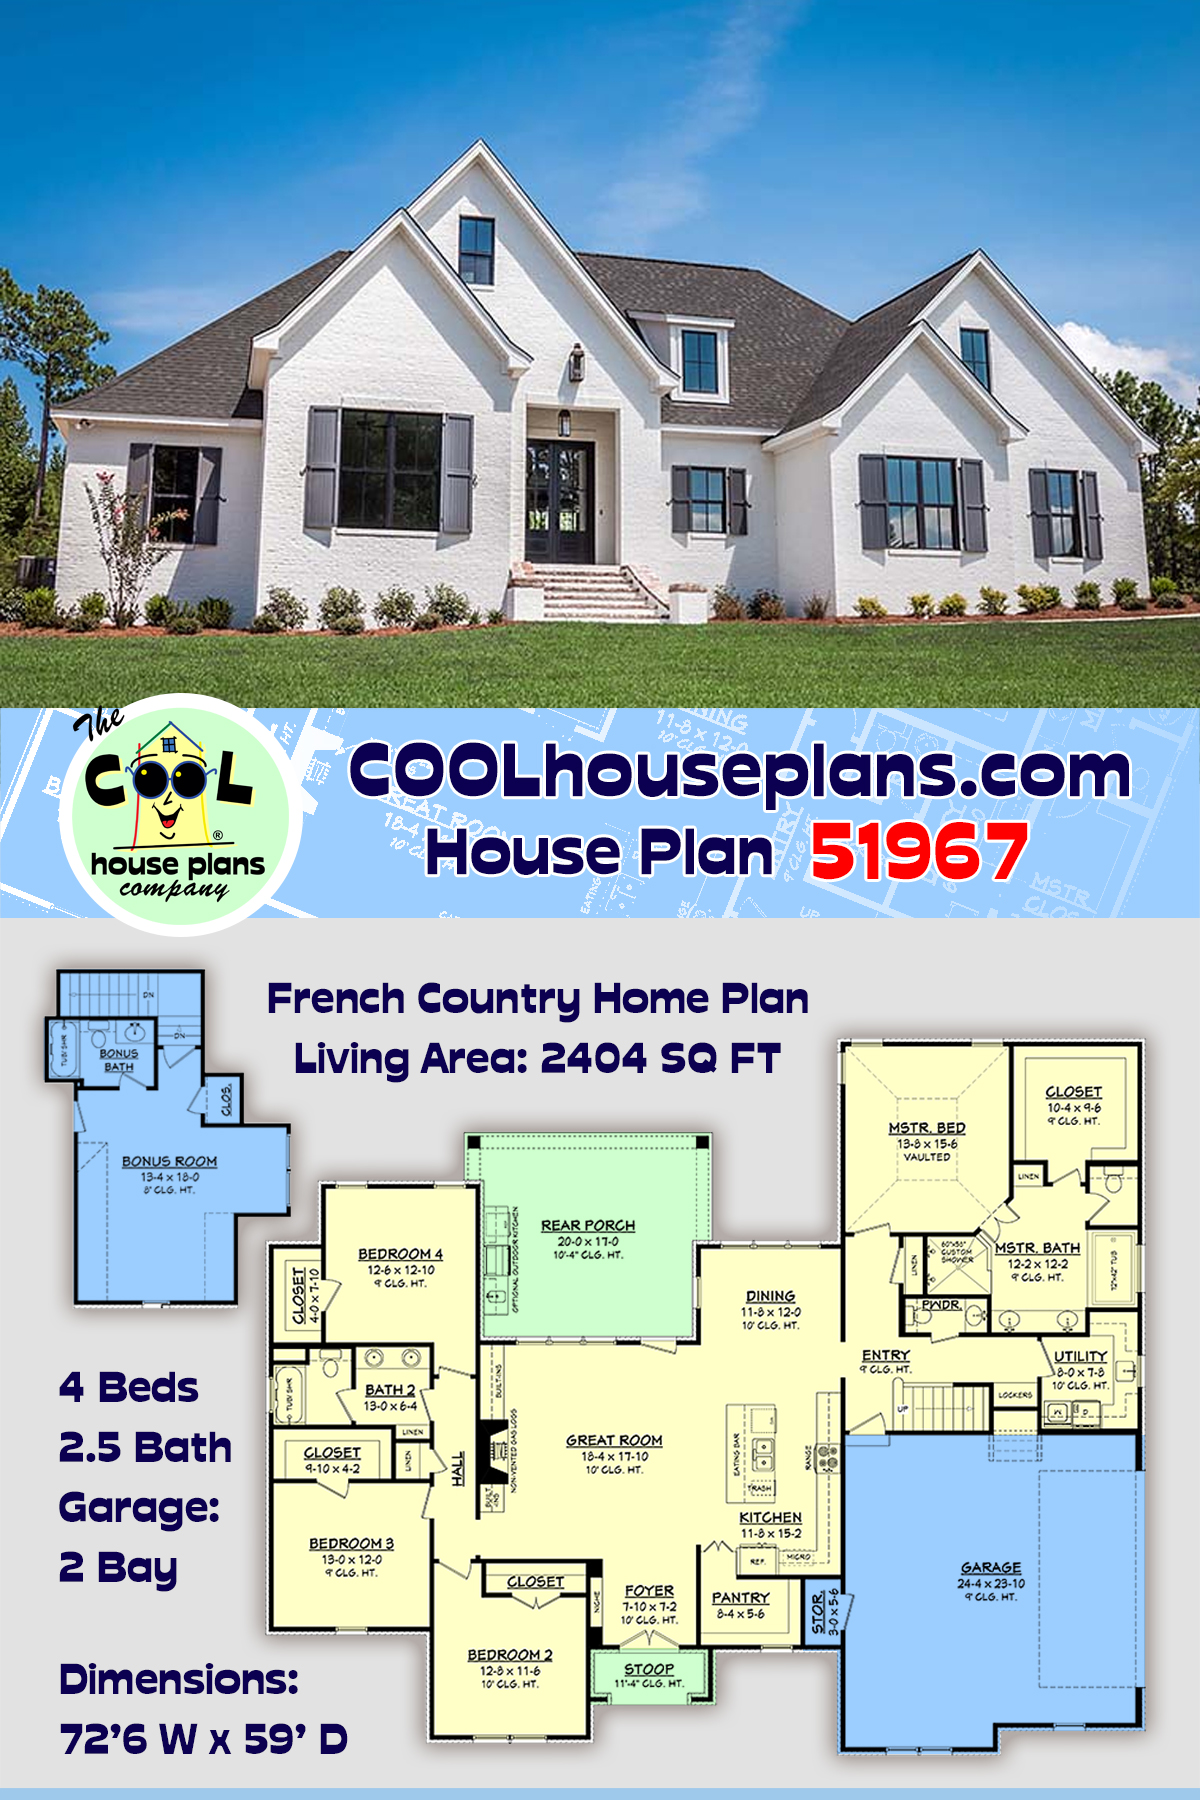 European, French Country House Plan 51967 with 4 Beds, 3 Baths, 2 Car Garage